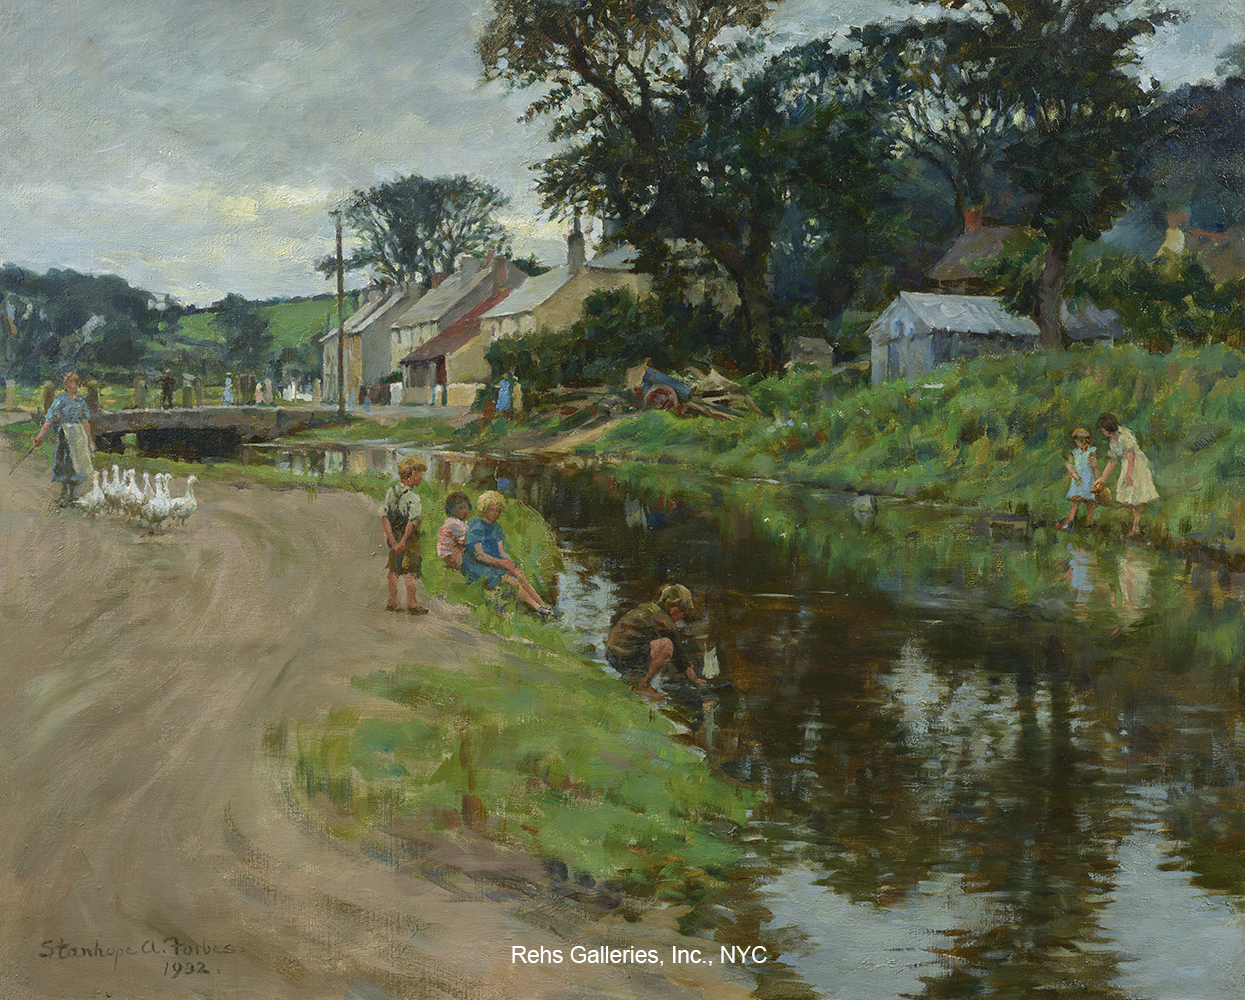 stanhope_alexander_forbes_e1415_at_the_waters_edge_hayle_cornwall_wm.jpg